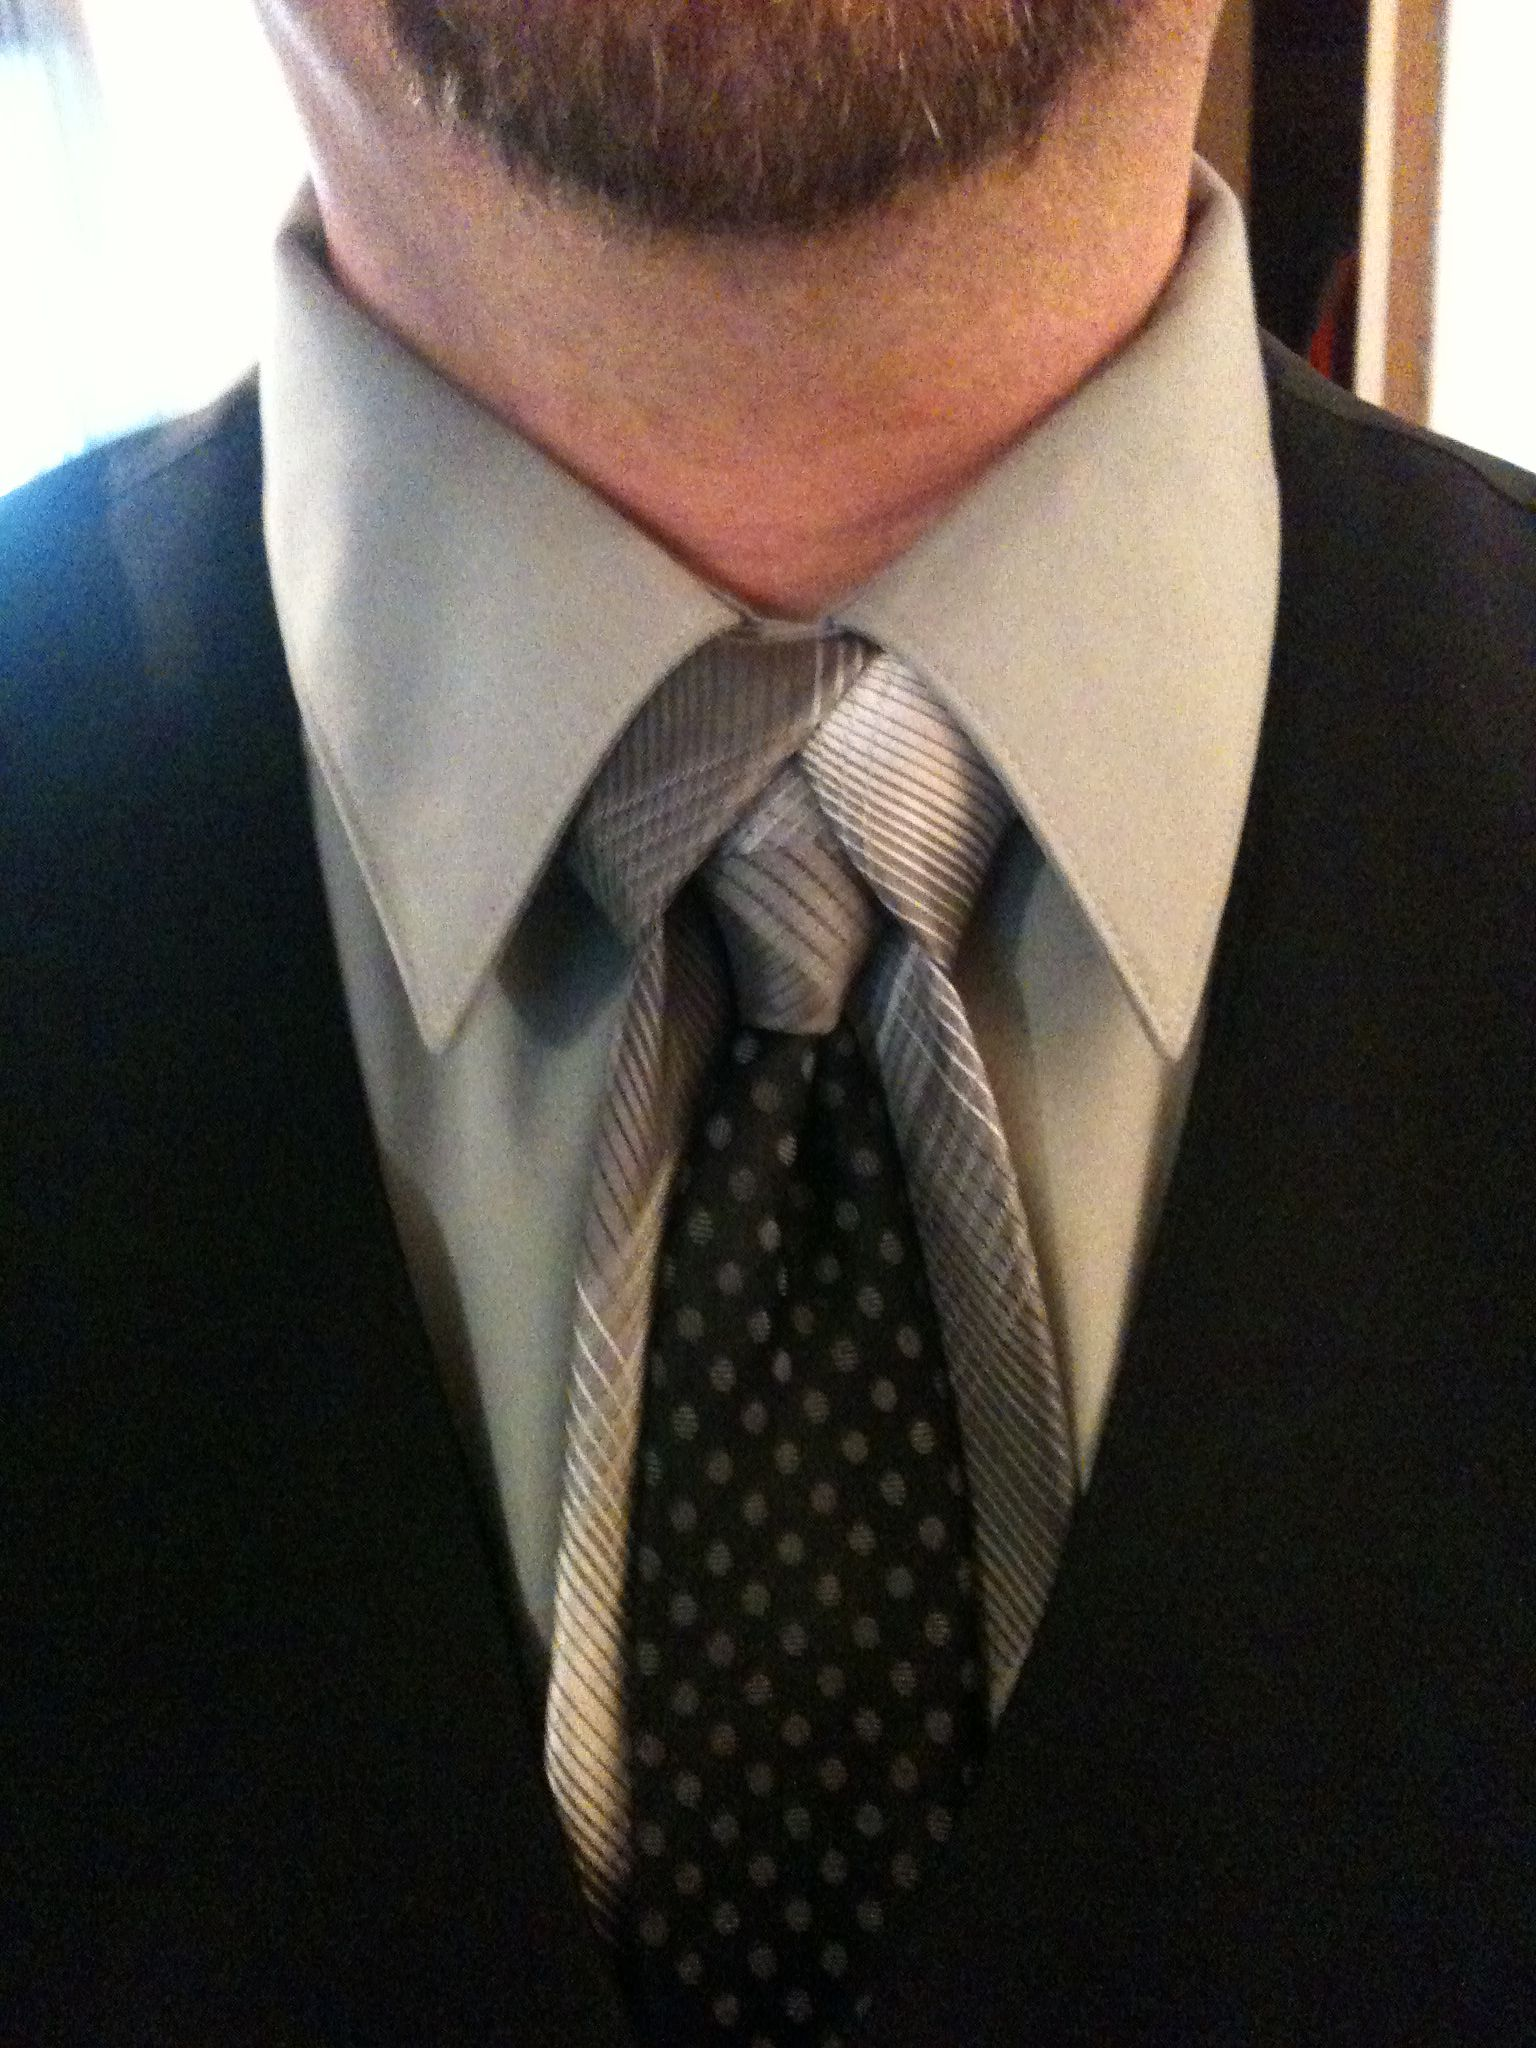 Ediety knot merovingian knot tie knot tie knots pinterest ediety knot merovingian knot tie knot ccuart Choice Image